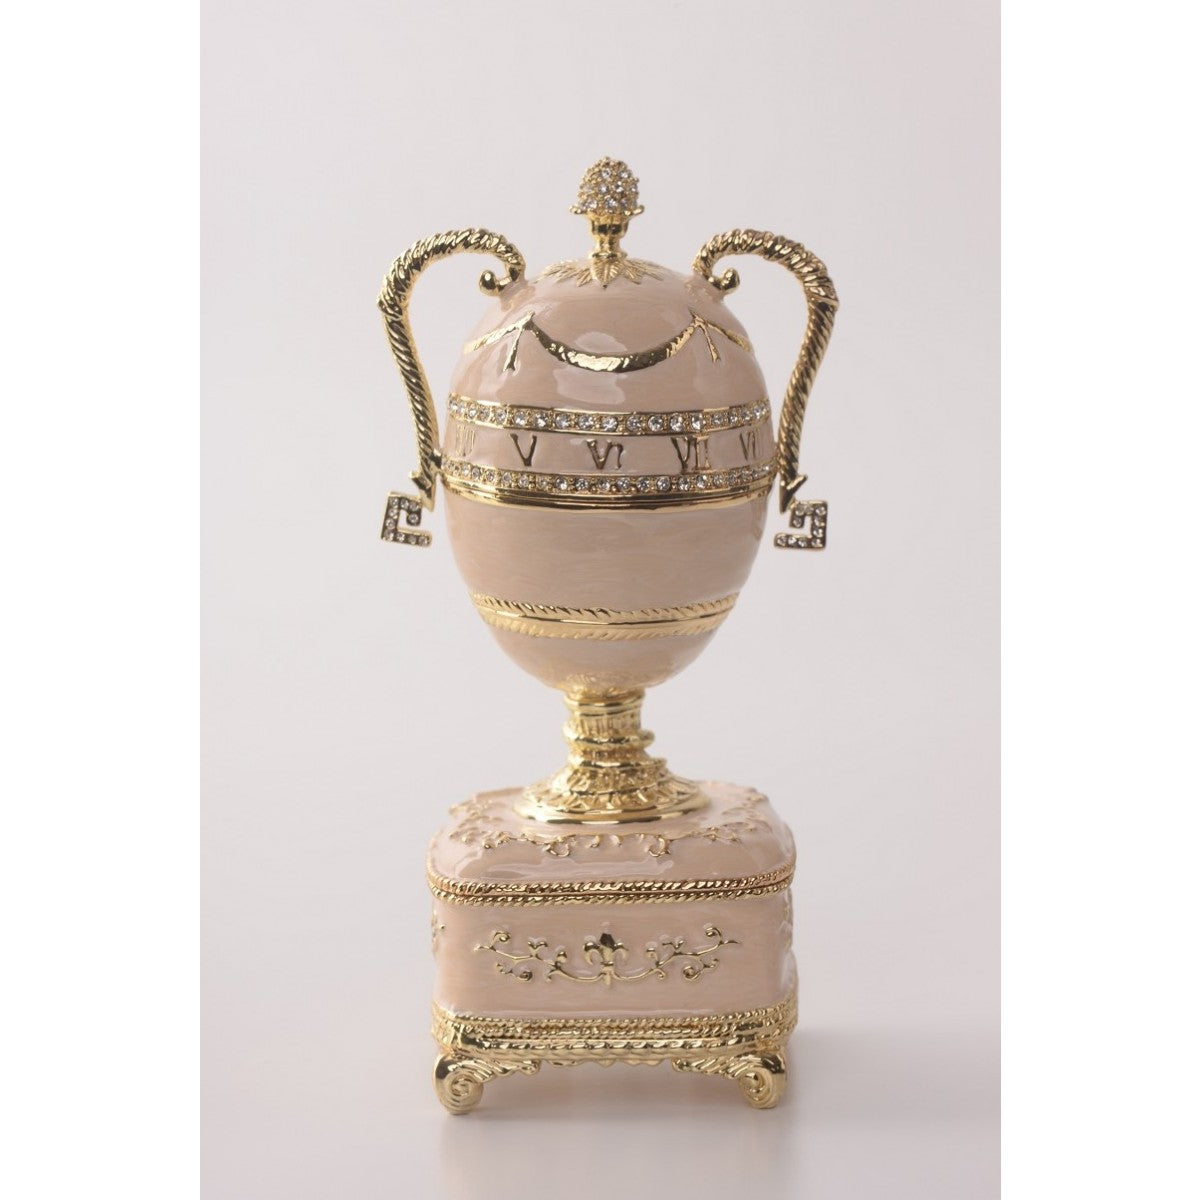 Baby Pink Faberge Egg with Gold Handles by Keren Kopal